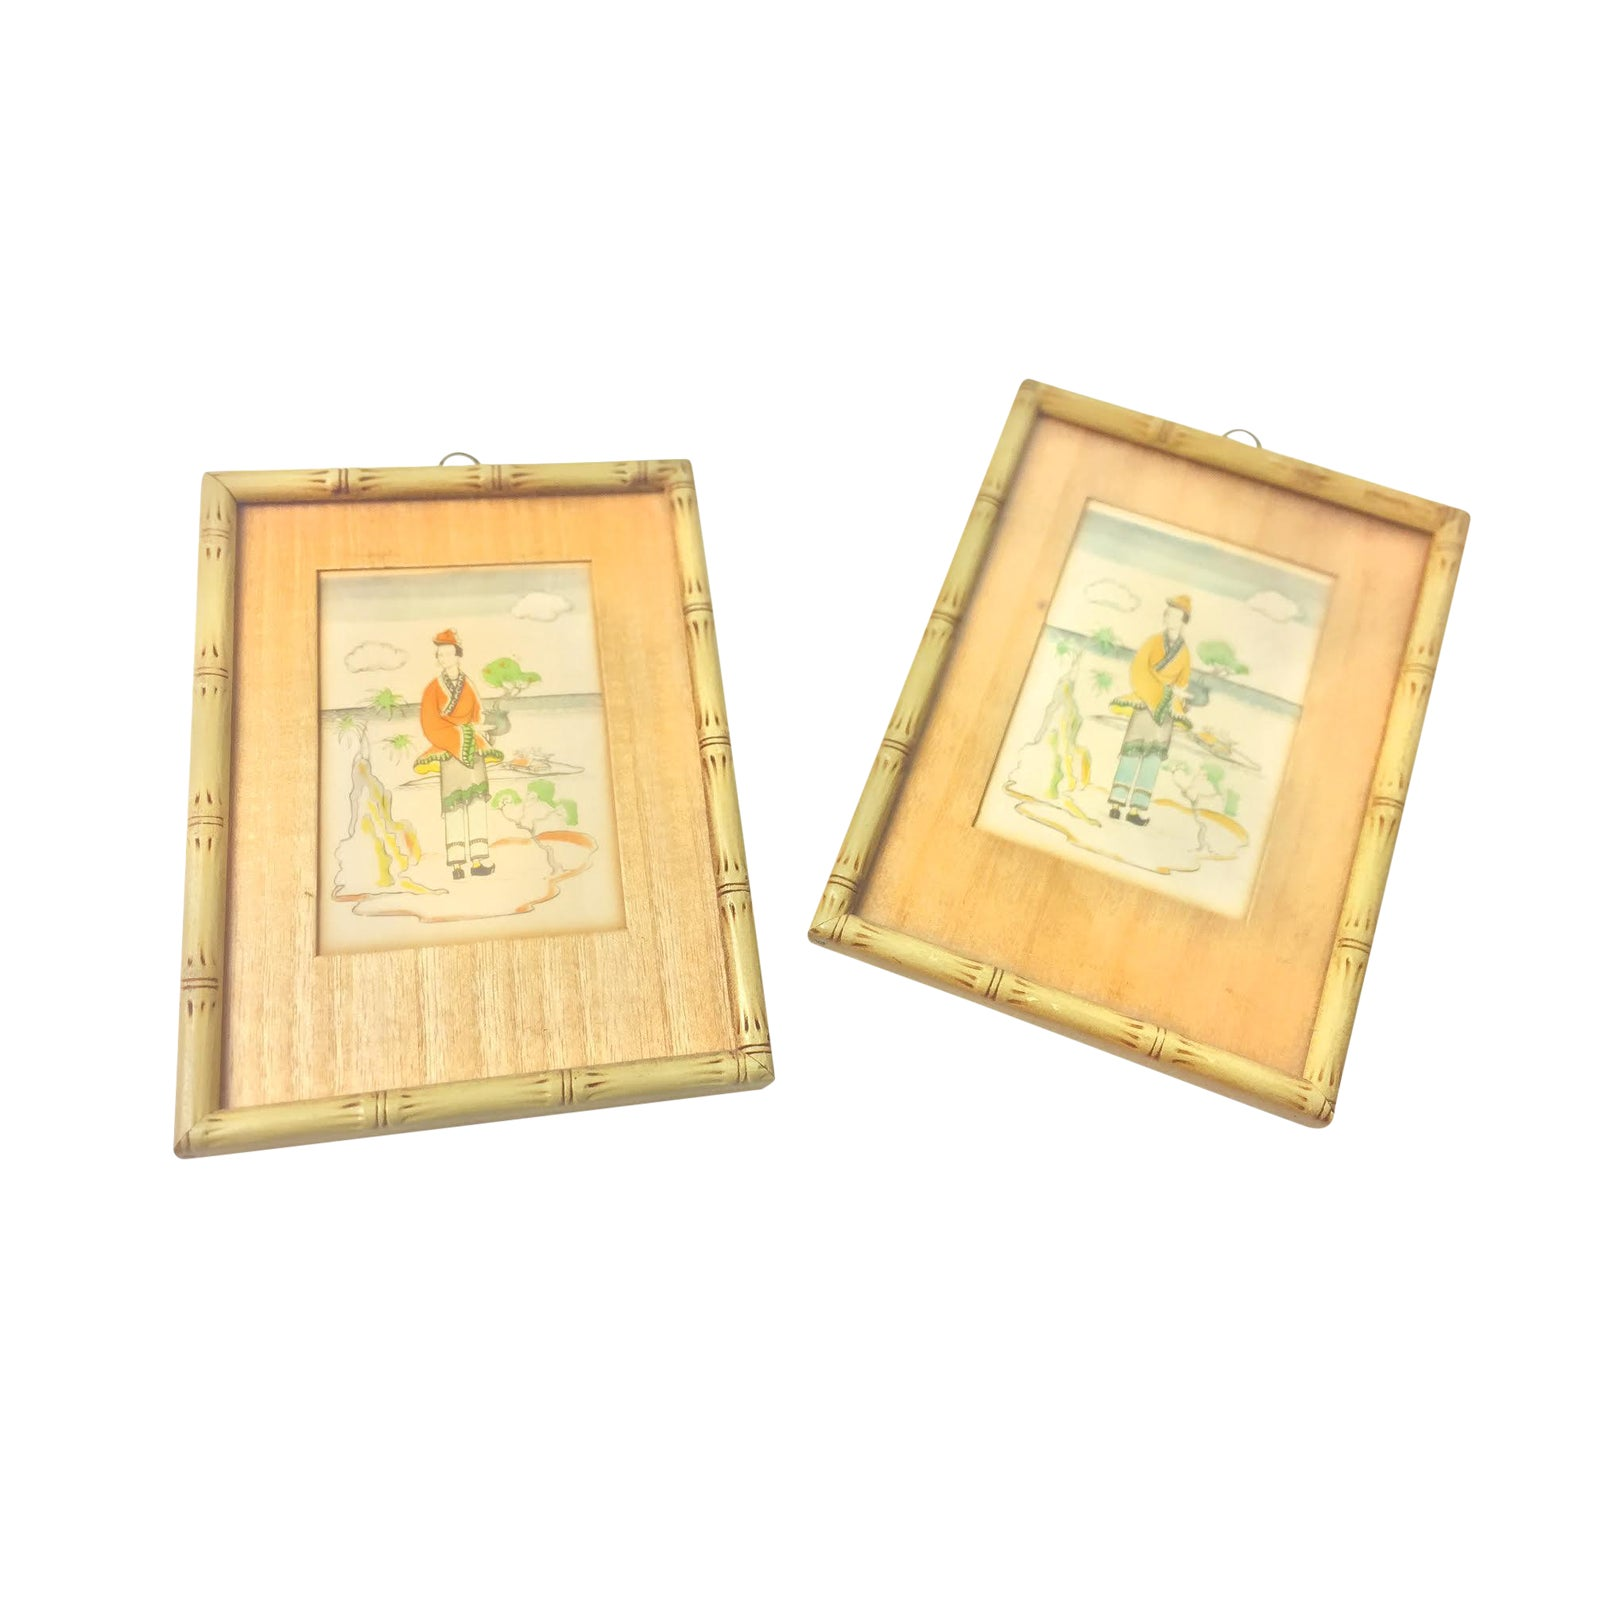 Wunderbar Photo Frame For Two Pictures Ideen - Rahmen Ideen ...